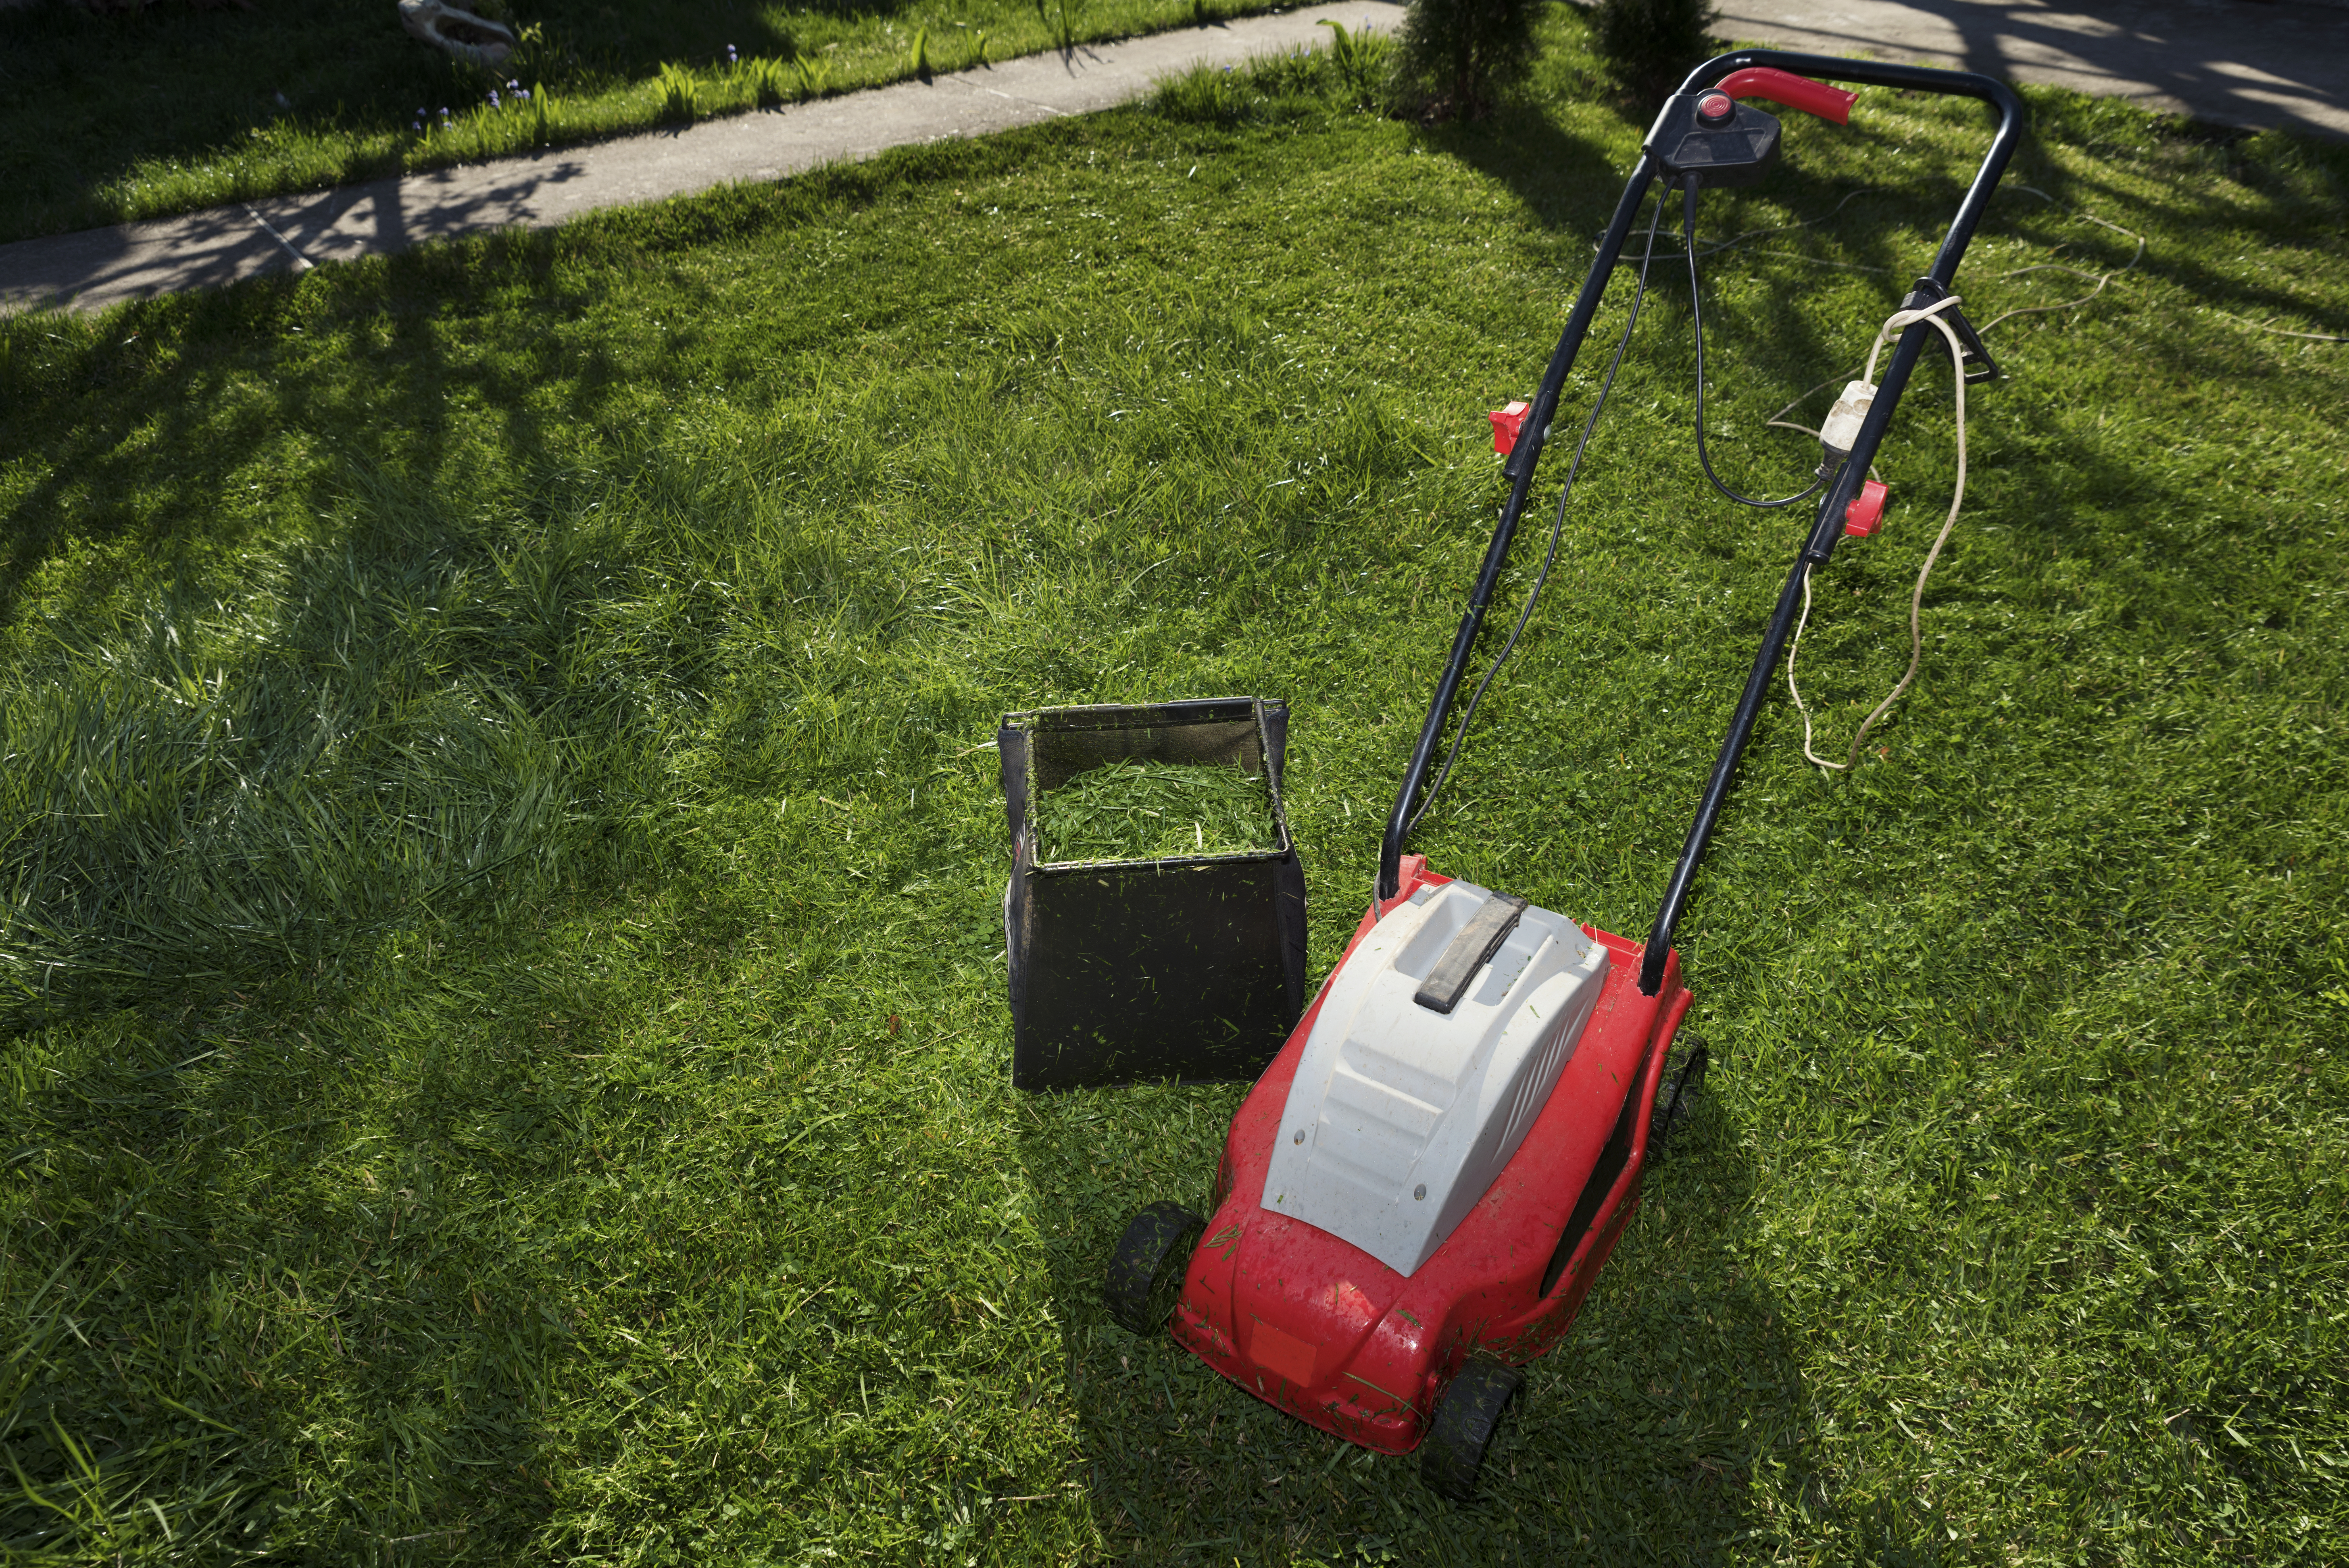 Are Electric Mowers Good? | Home Guides | SF Gate